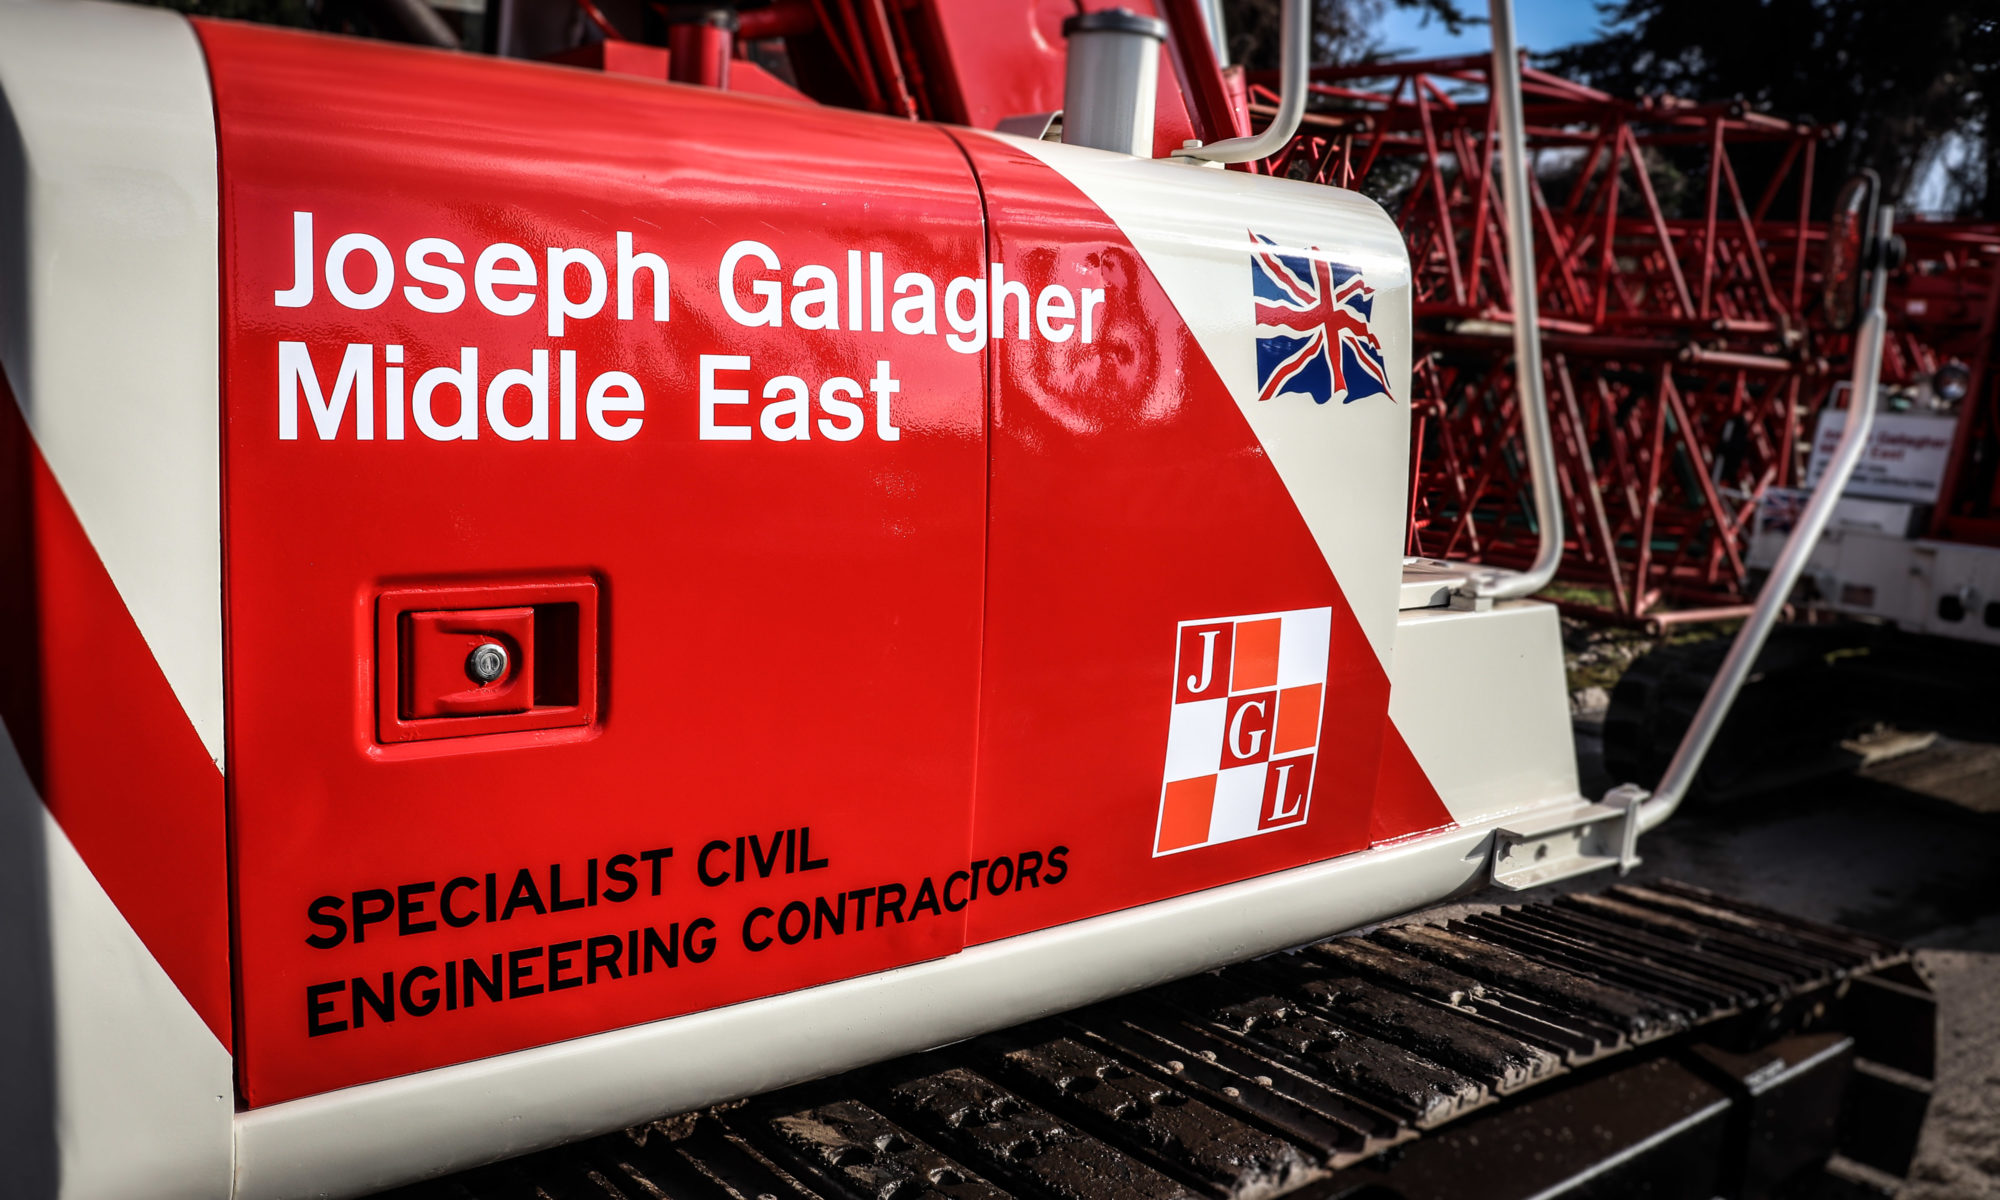 Joseph Gallagher Middle East Crawler Crane